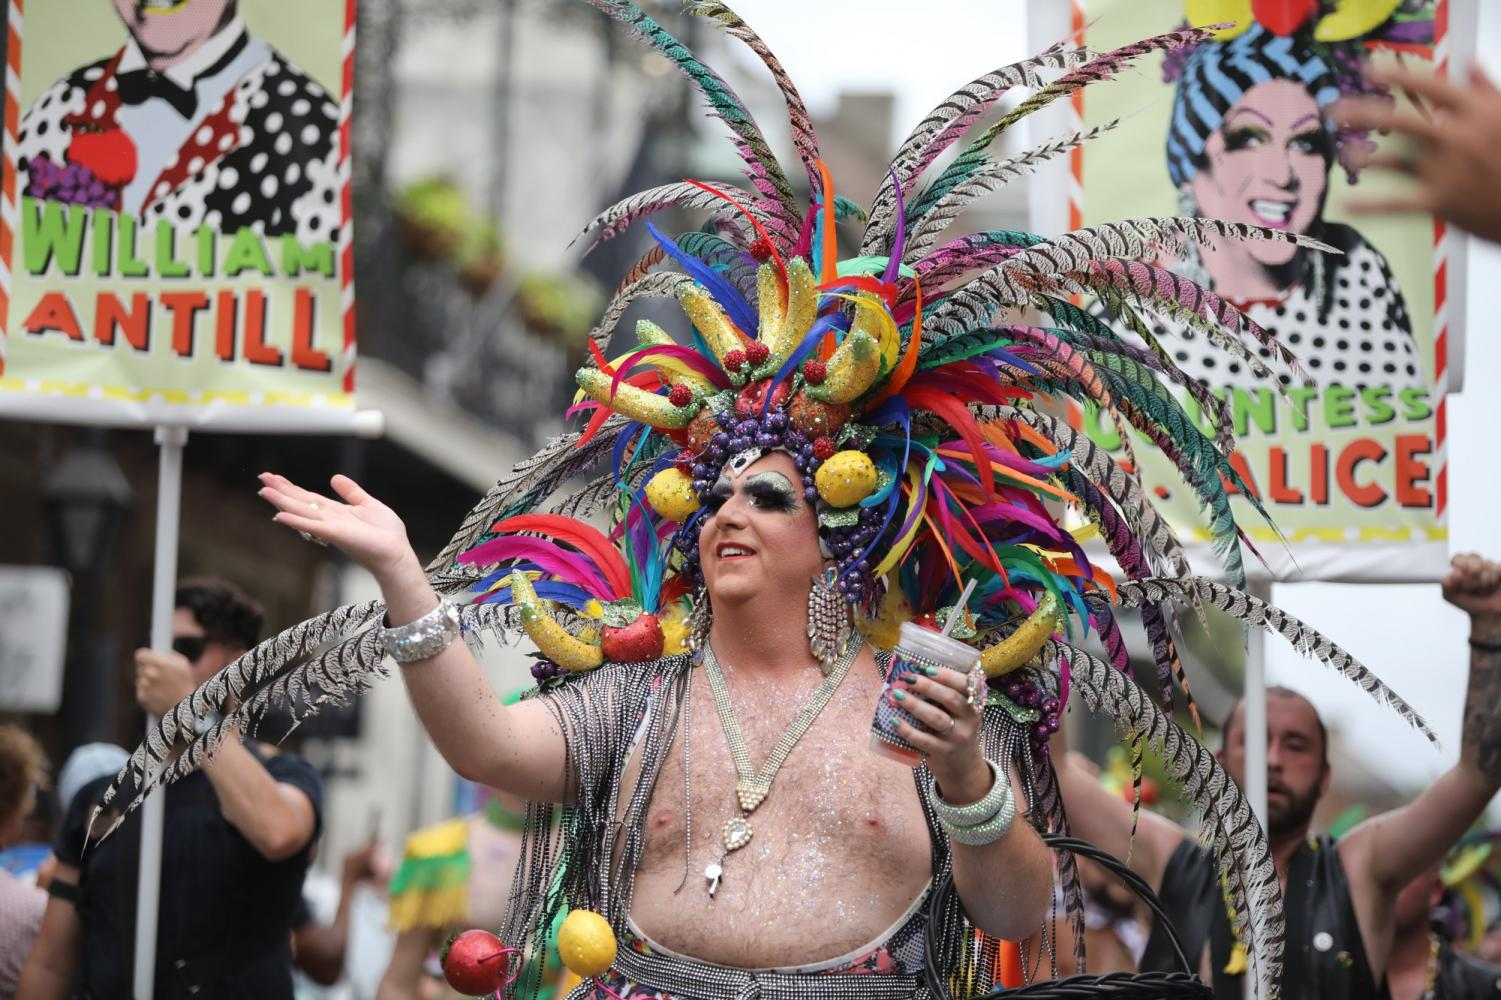 Countess C. Alice leads the 48th annual Southern Decadence parade down Royal Street on September 1, 2019. This year's theme was